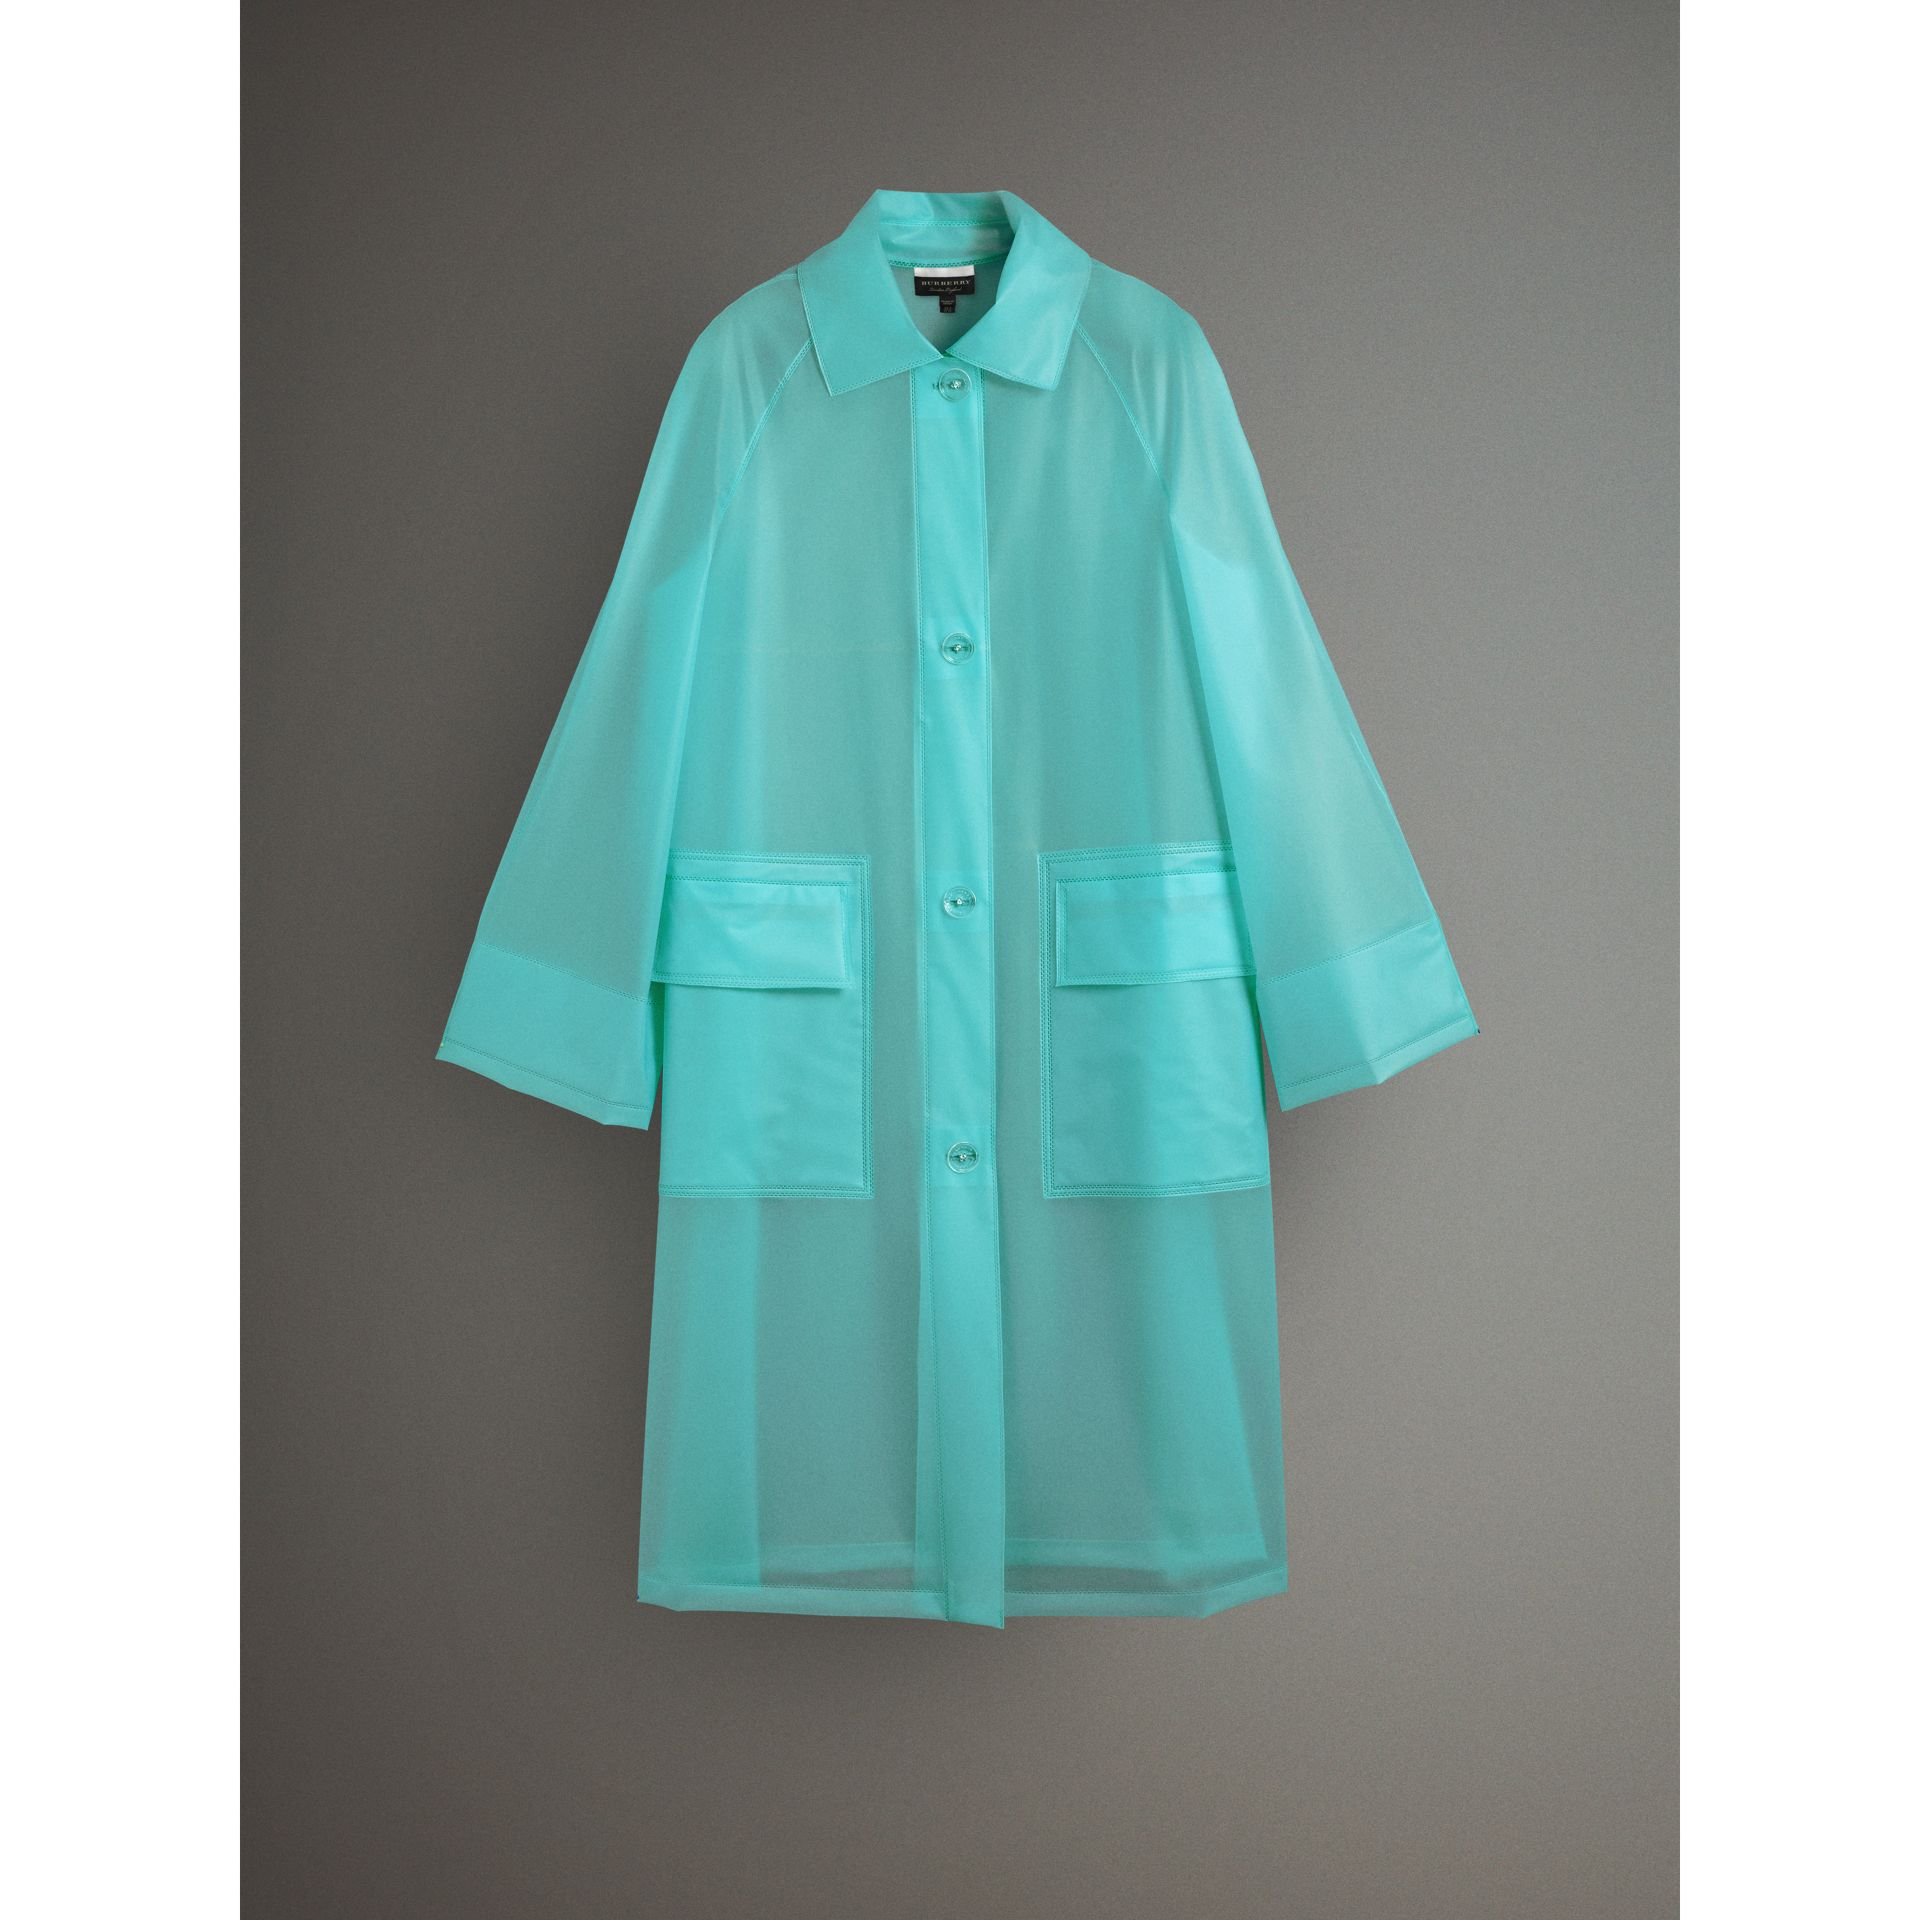 Soft-touch Plastic Car Coat in Turquoise - Women | Burberry Canada - gallery image 3